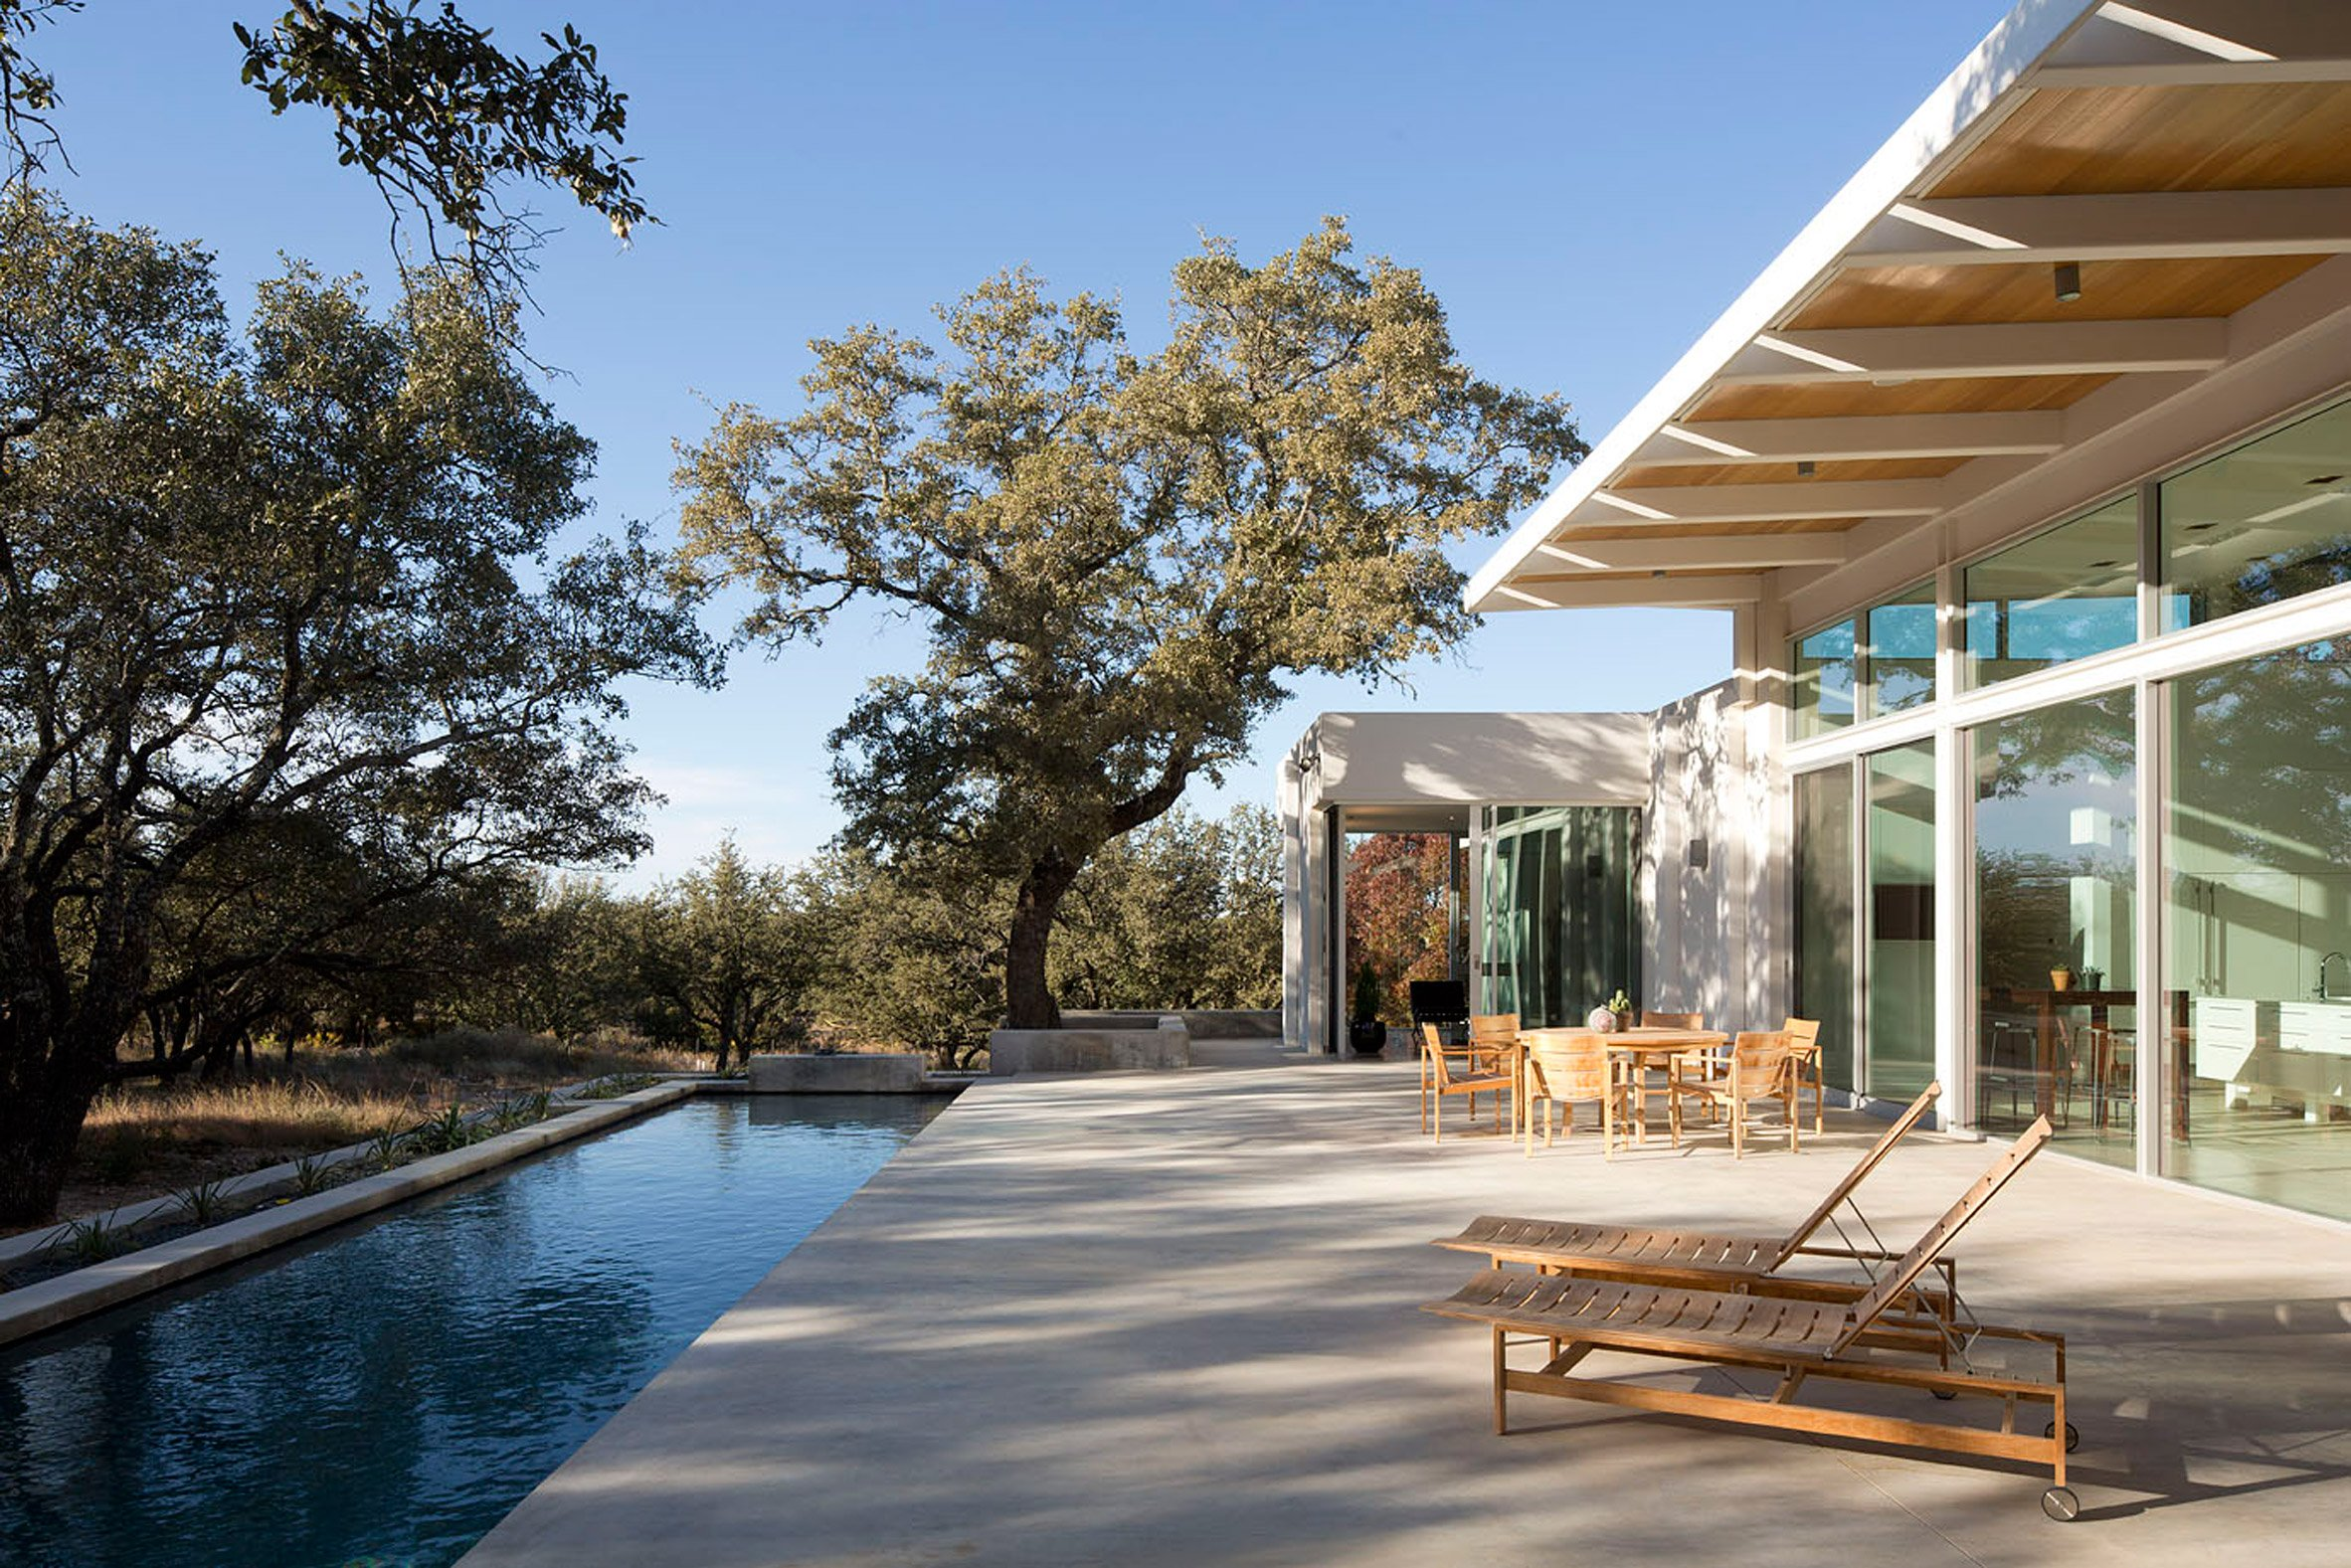 Low-lying residence by Dick Clark stretches across a Texas prairie